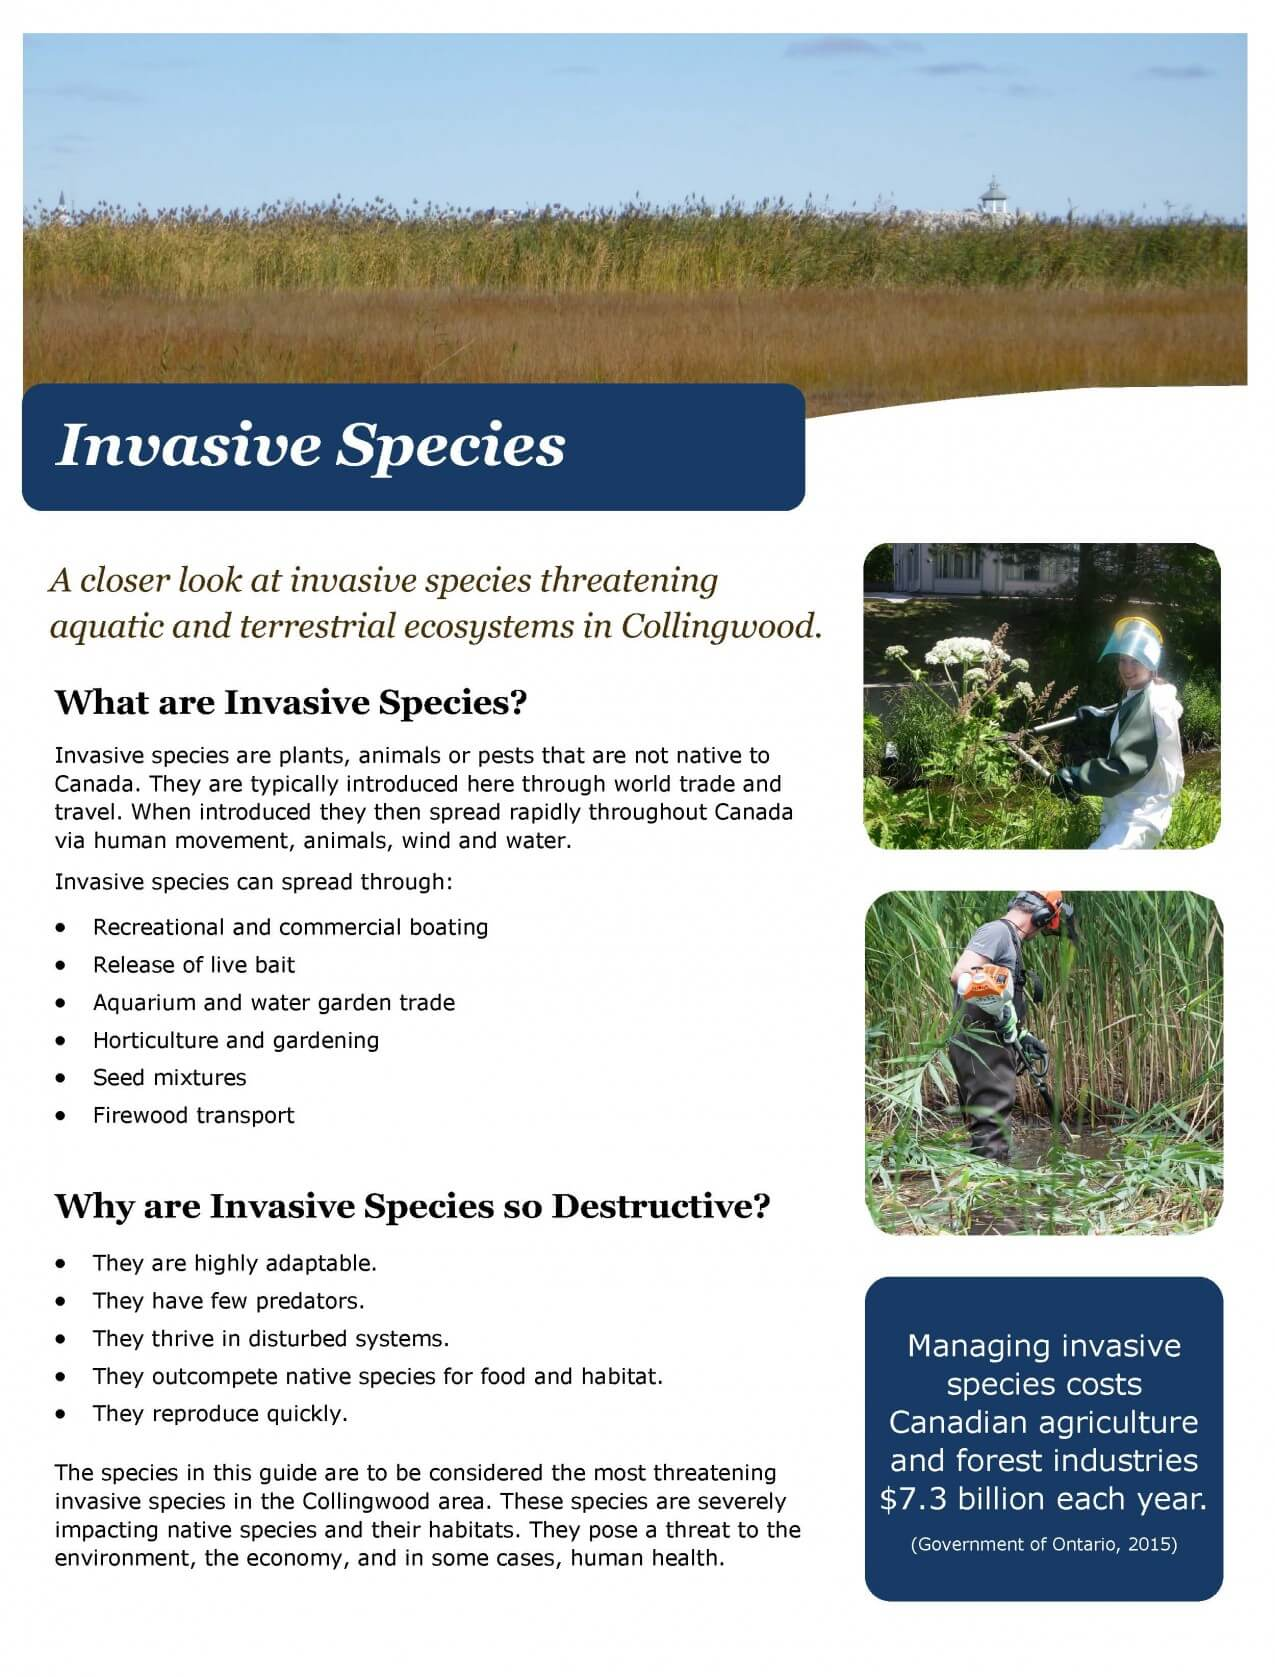 Invasive Species tool